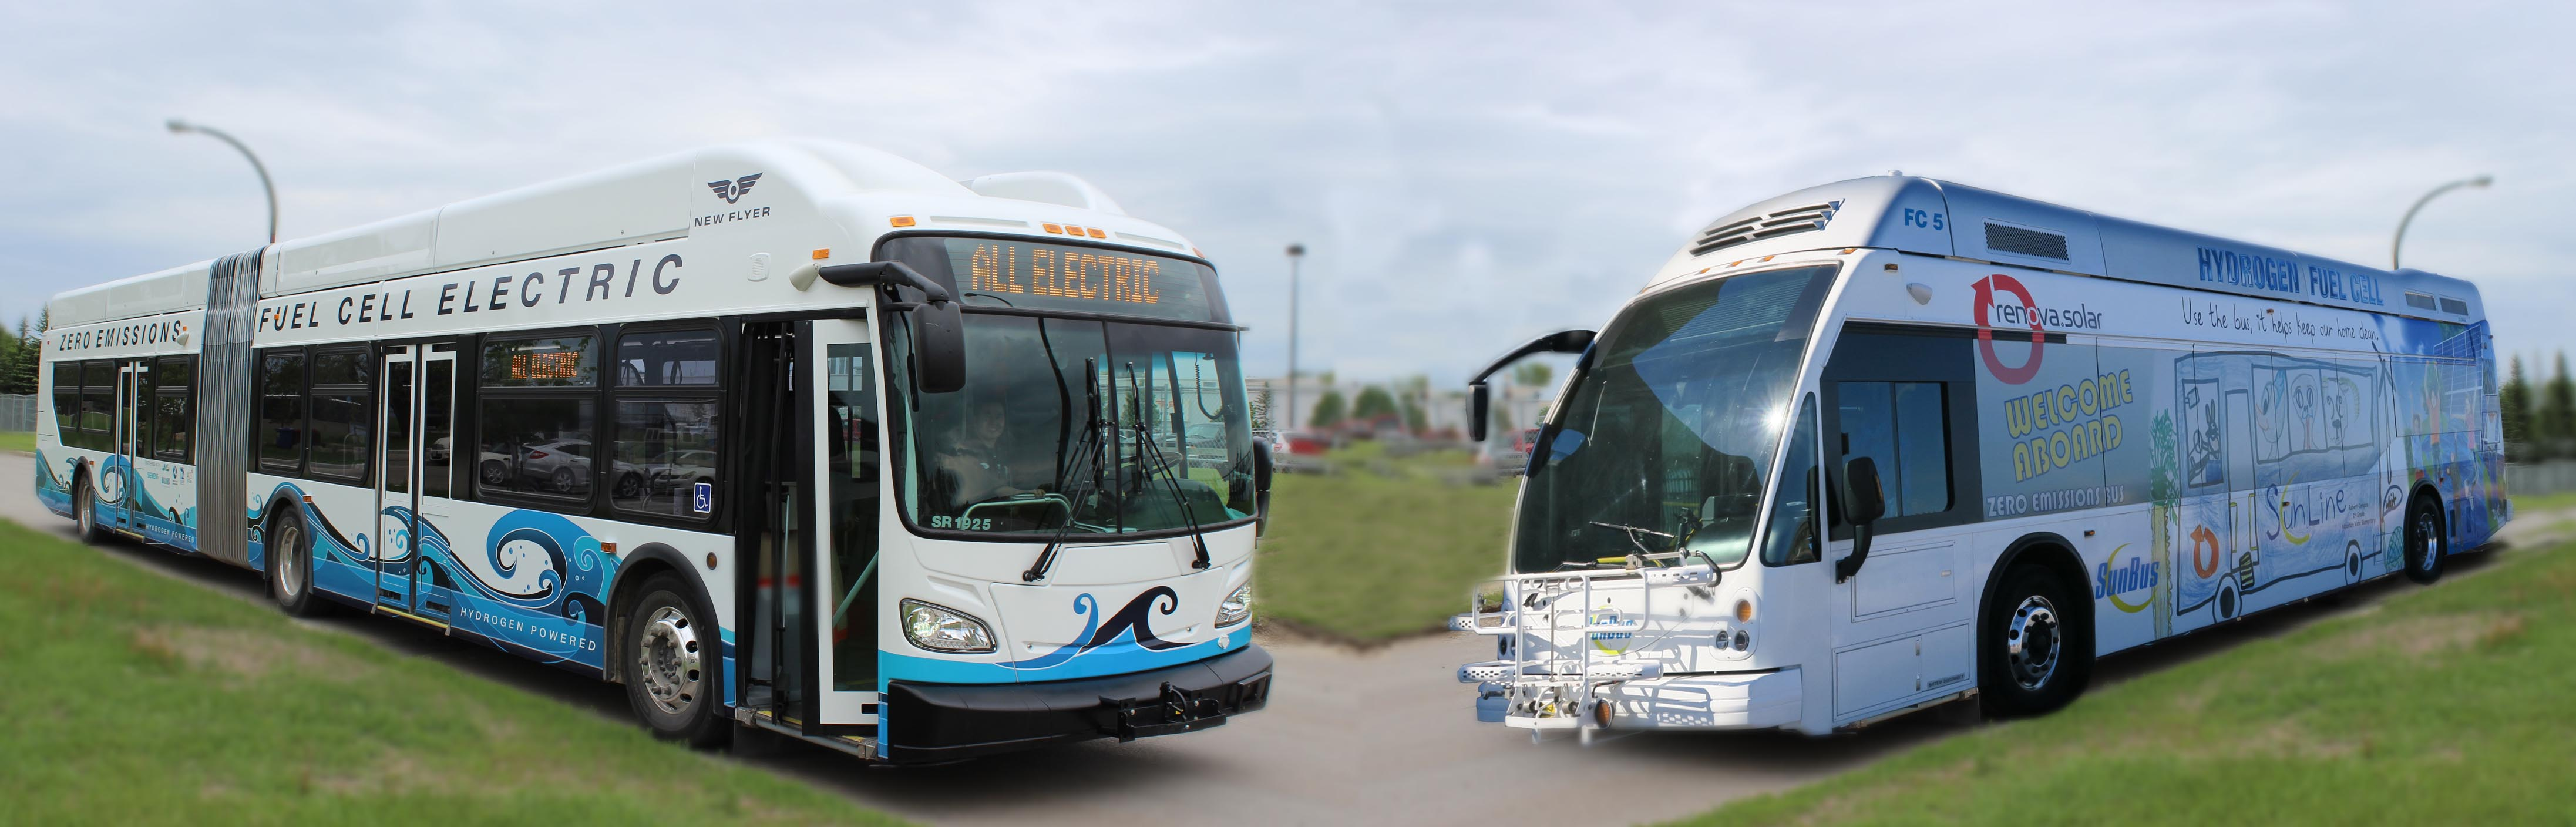 fuel-cell-electric-buses